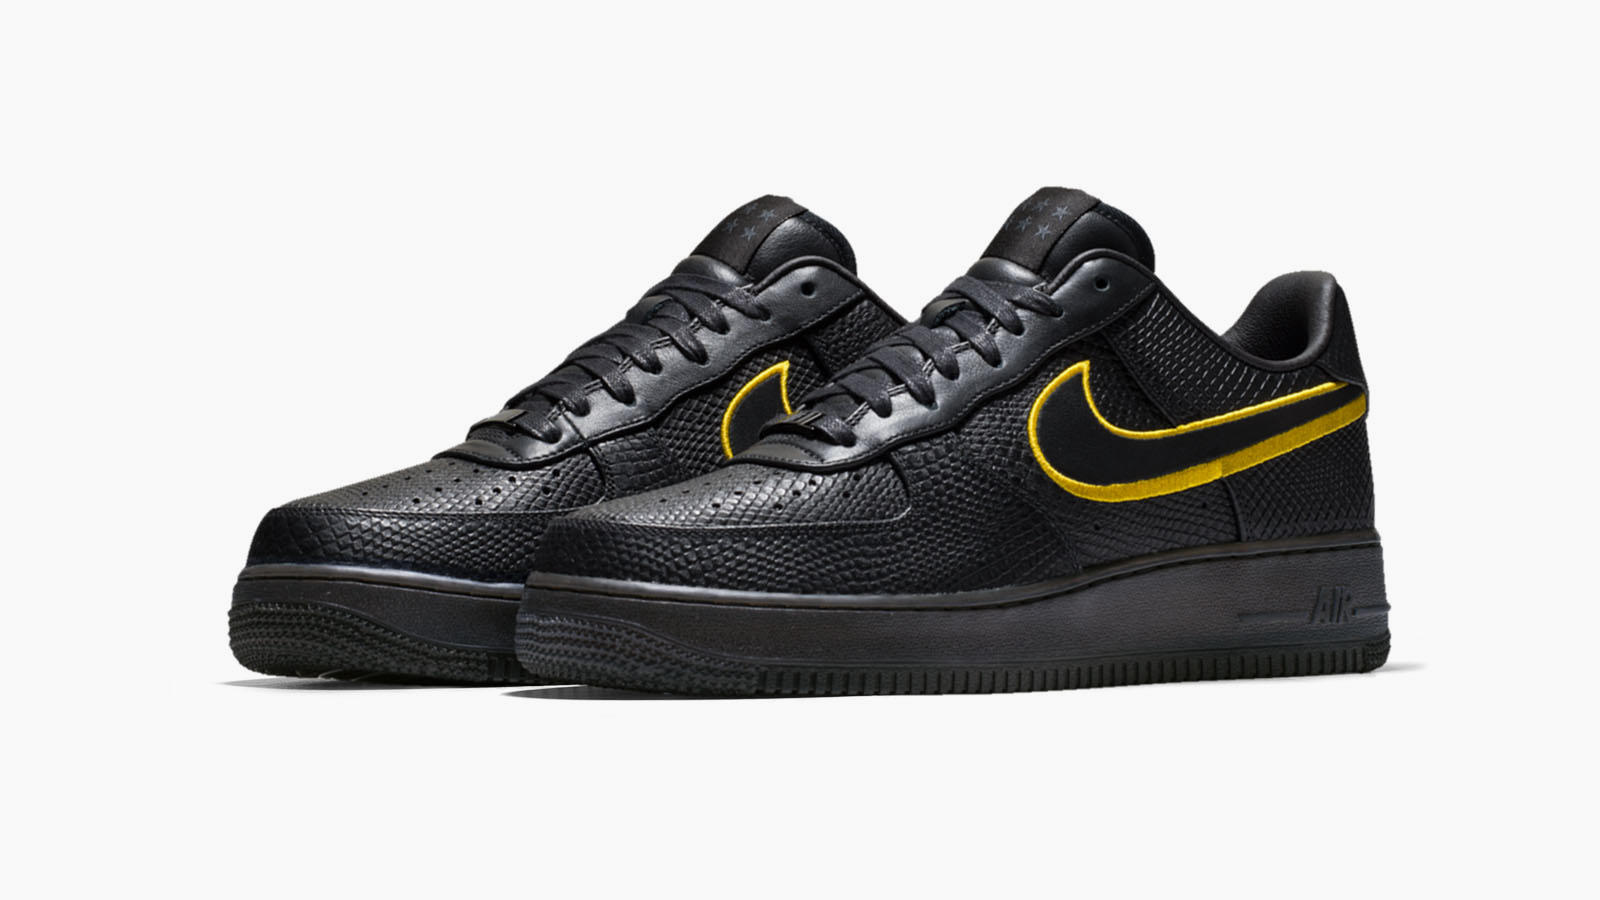 Five Things to Know About the Commemorative Kobe Bryant Black Mamba Air Force 1 14